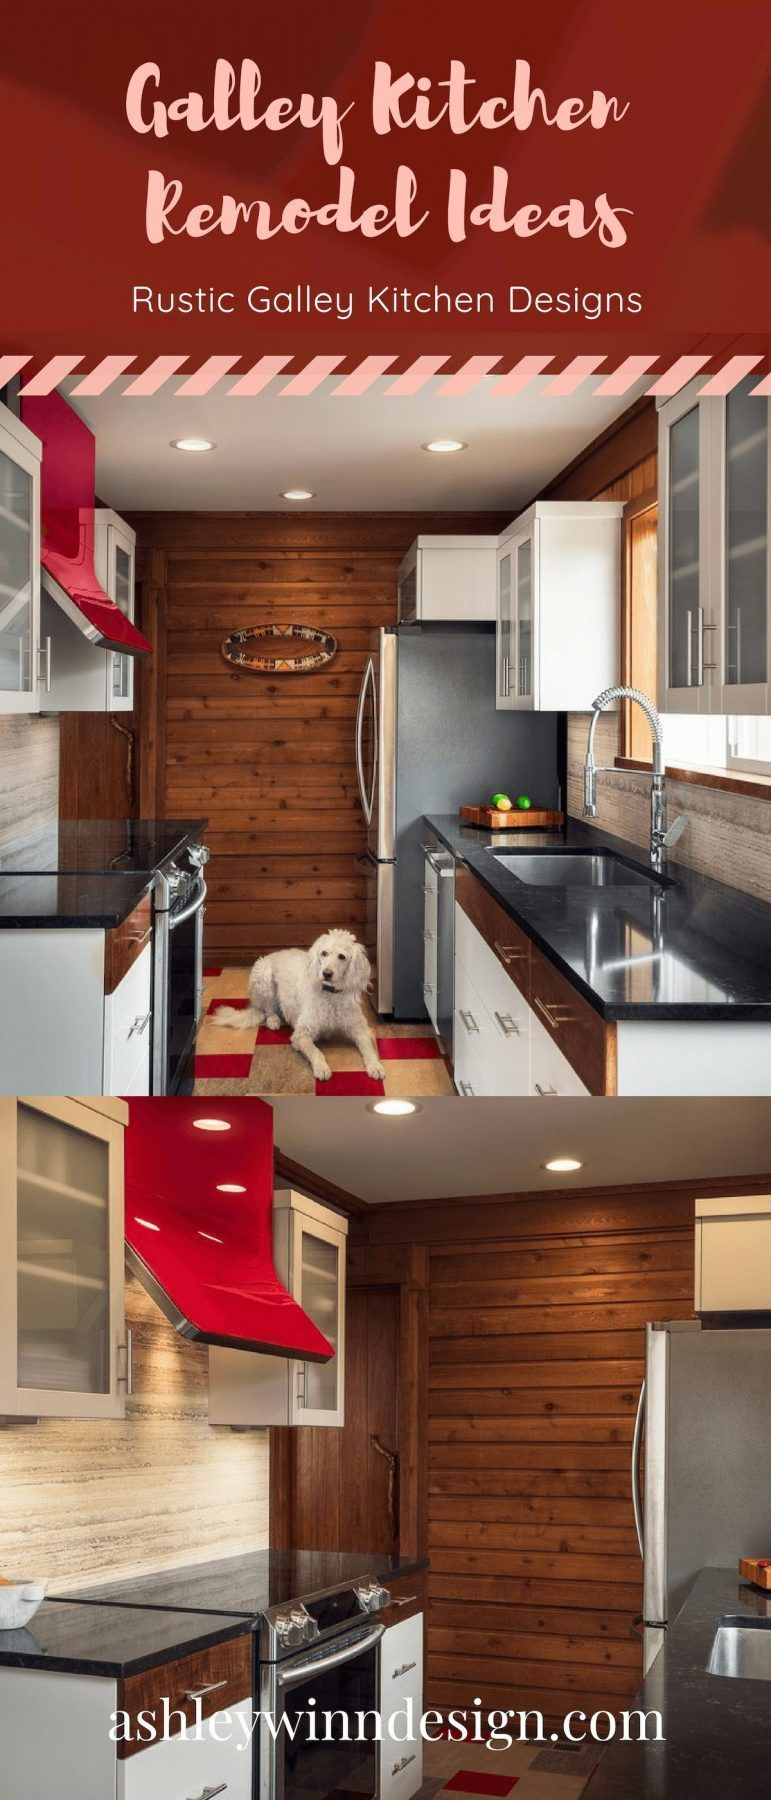 40 Awesome Galley Kitchen Remodel Ideas Design Inspiration In 2020 Galley Kitchen Design Galley Kitchen Remodel Galley Kitchen Renovation